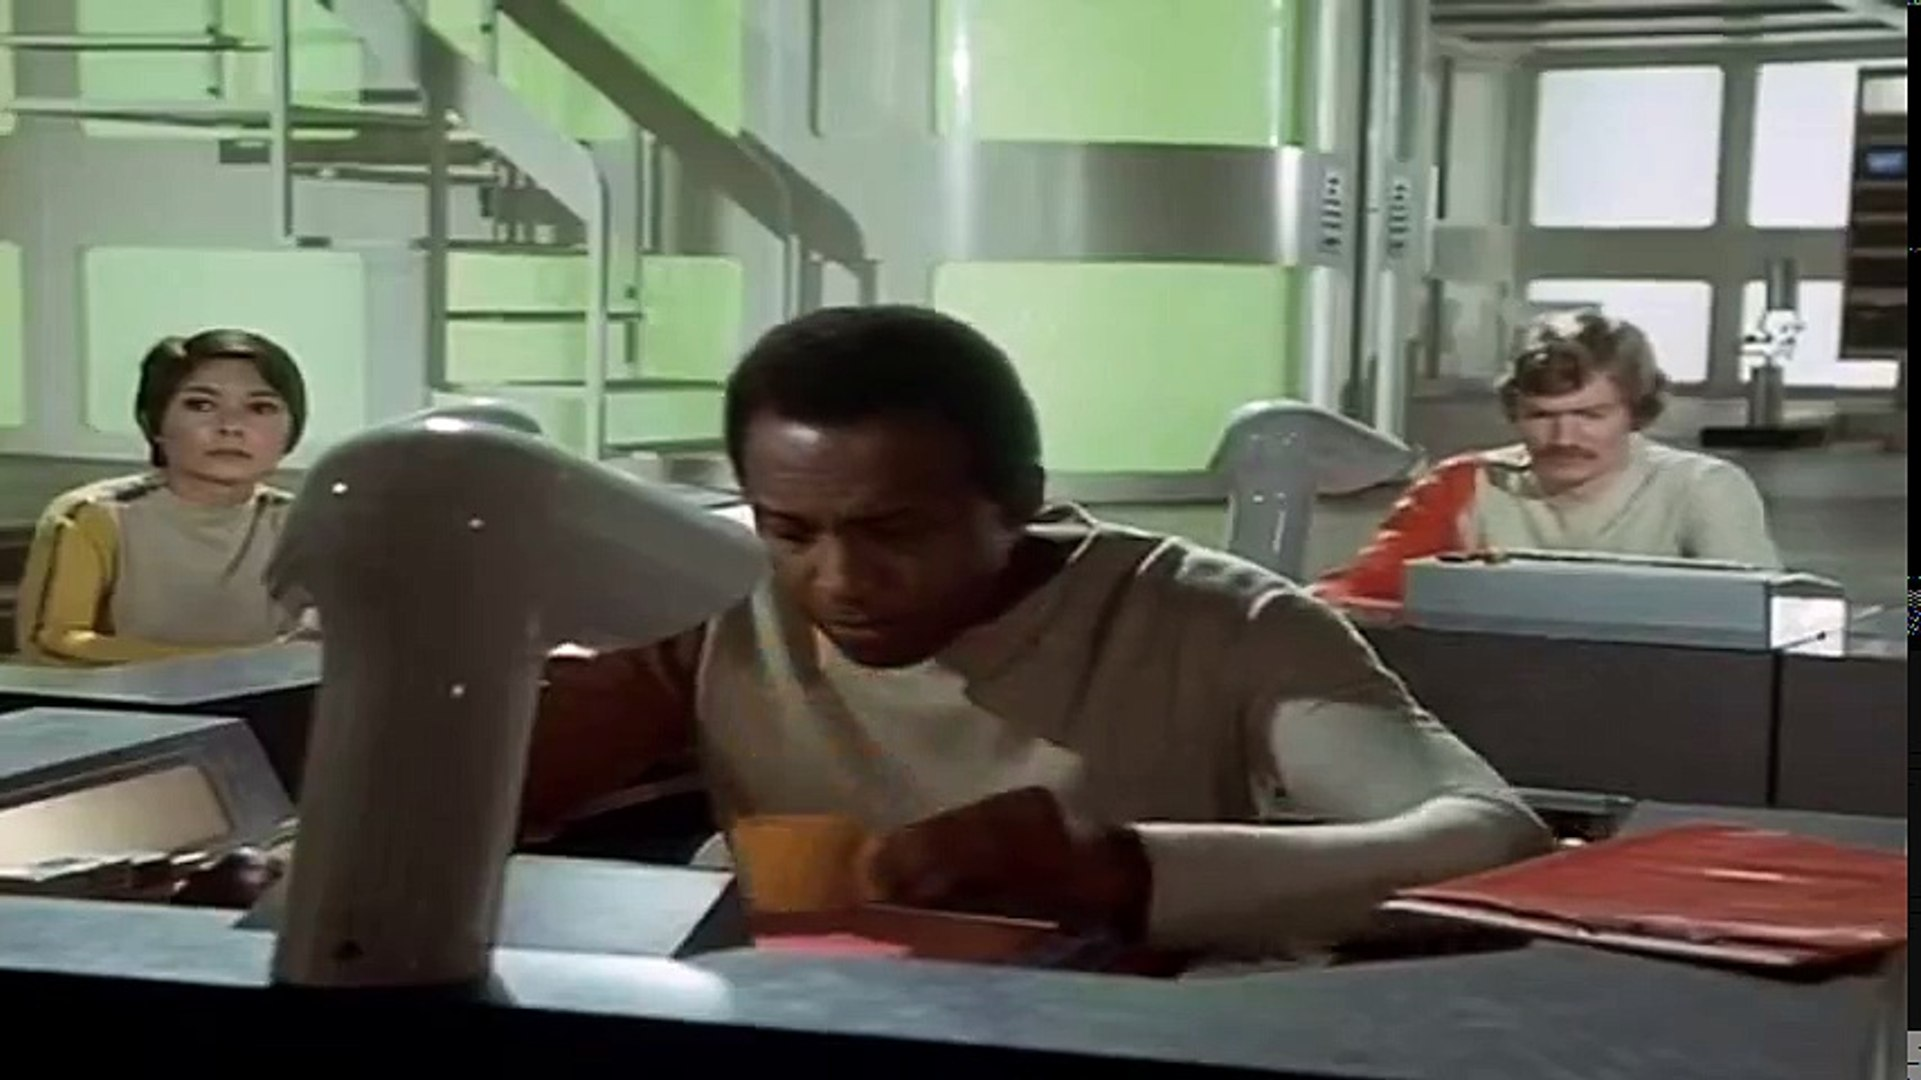 Space 1999 S01 - Ep05 de'ath's Other Dominion HD Watch